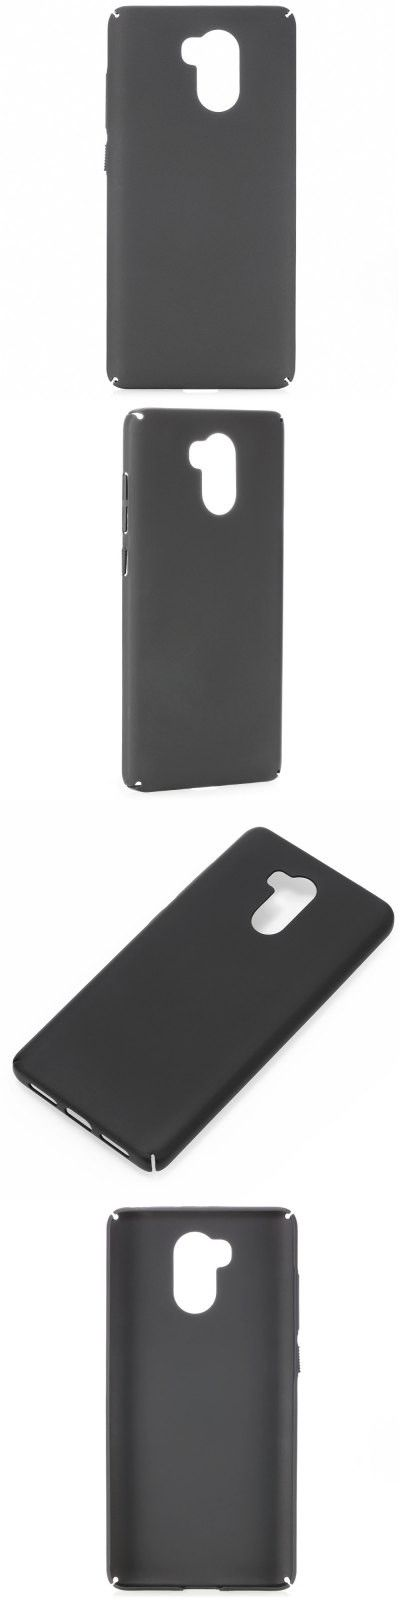 Luanke Cover PC Case Protector-3.59